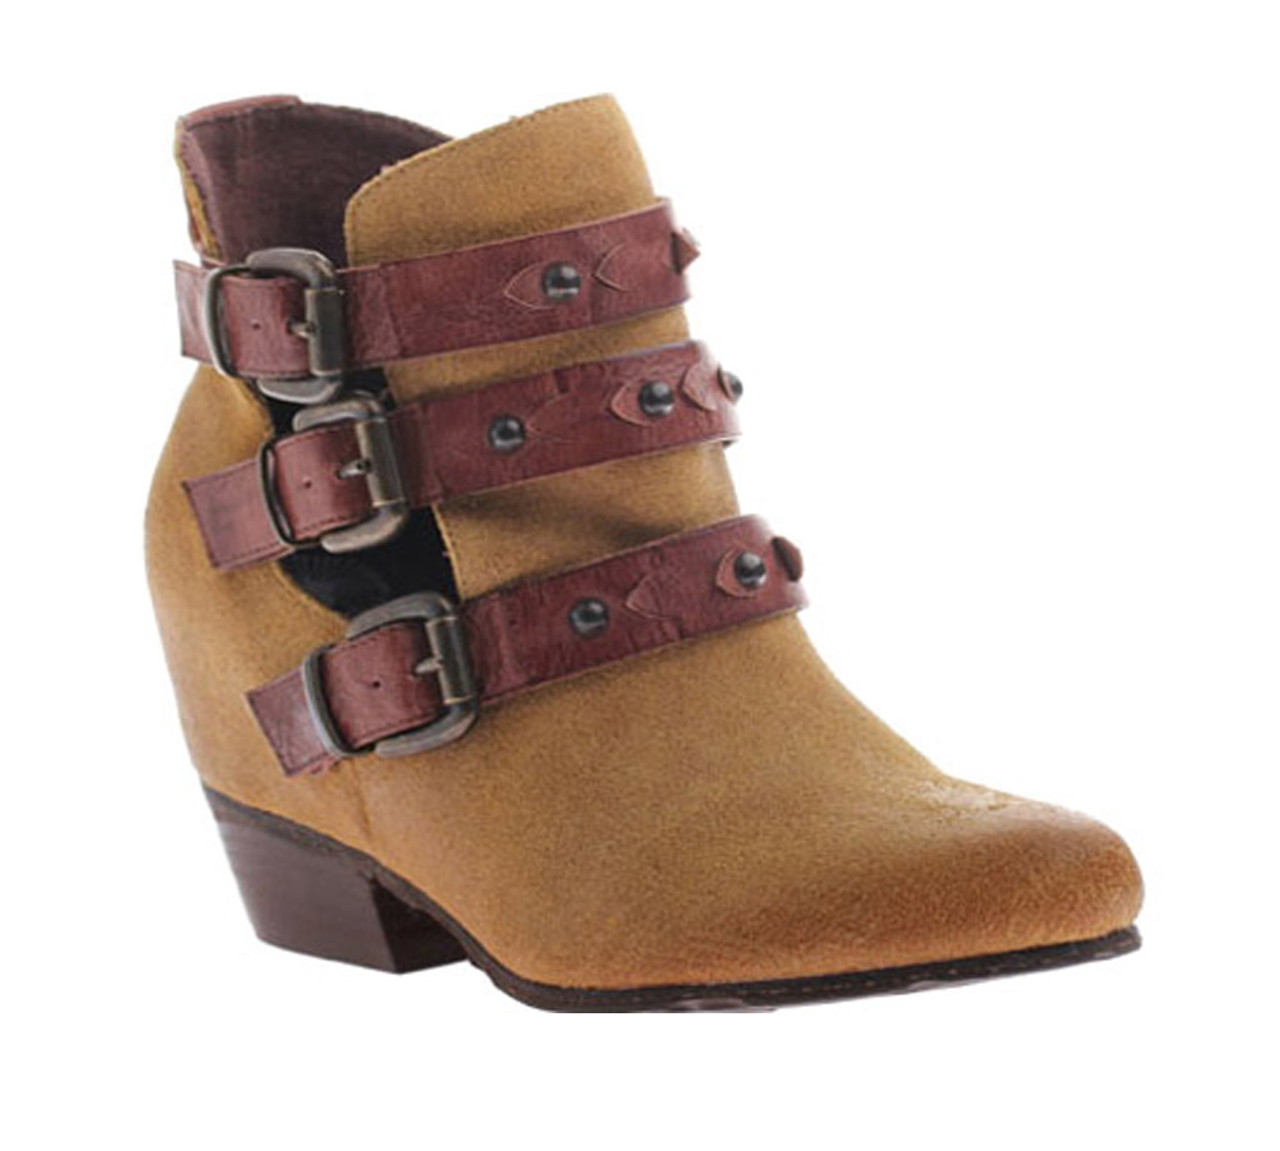 8e9f3f28b91 OTBT Women s Valley View Ankle Boot Honey - Shop now   Shoolu.com